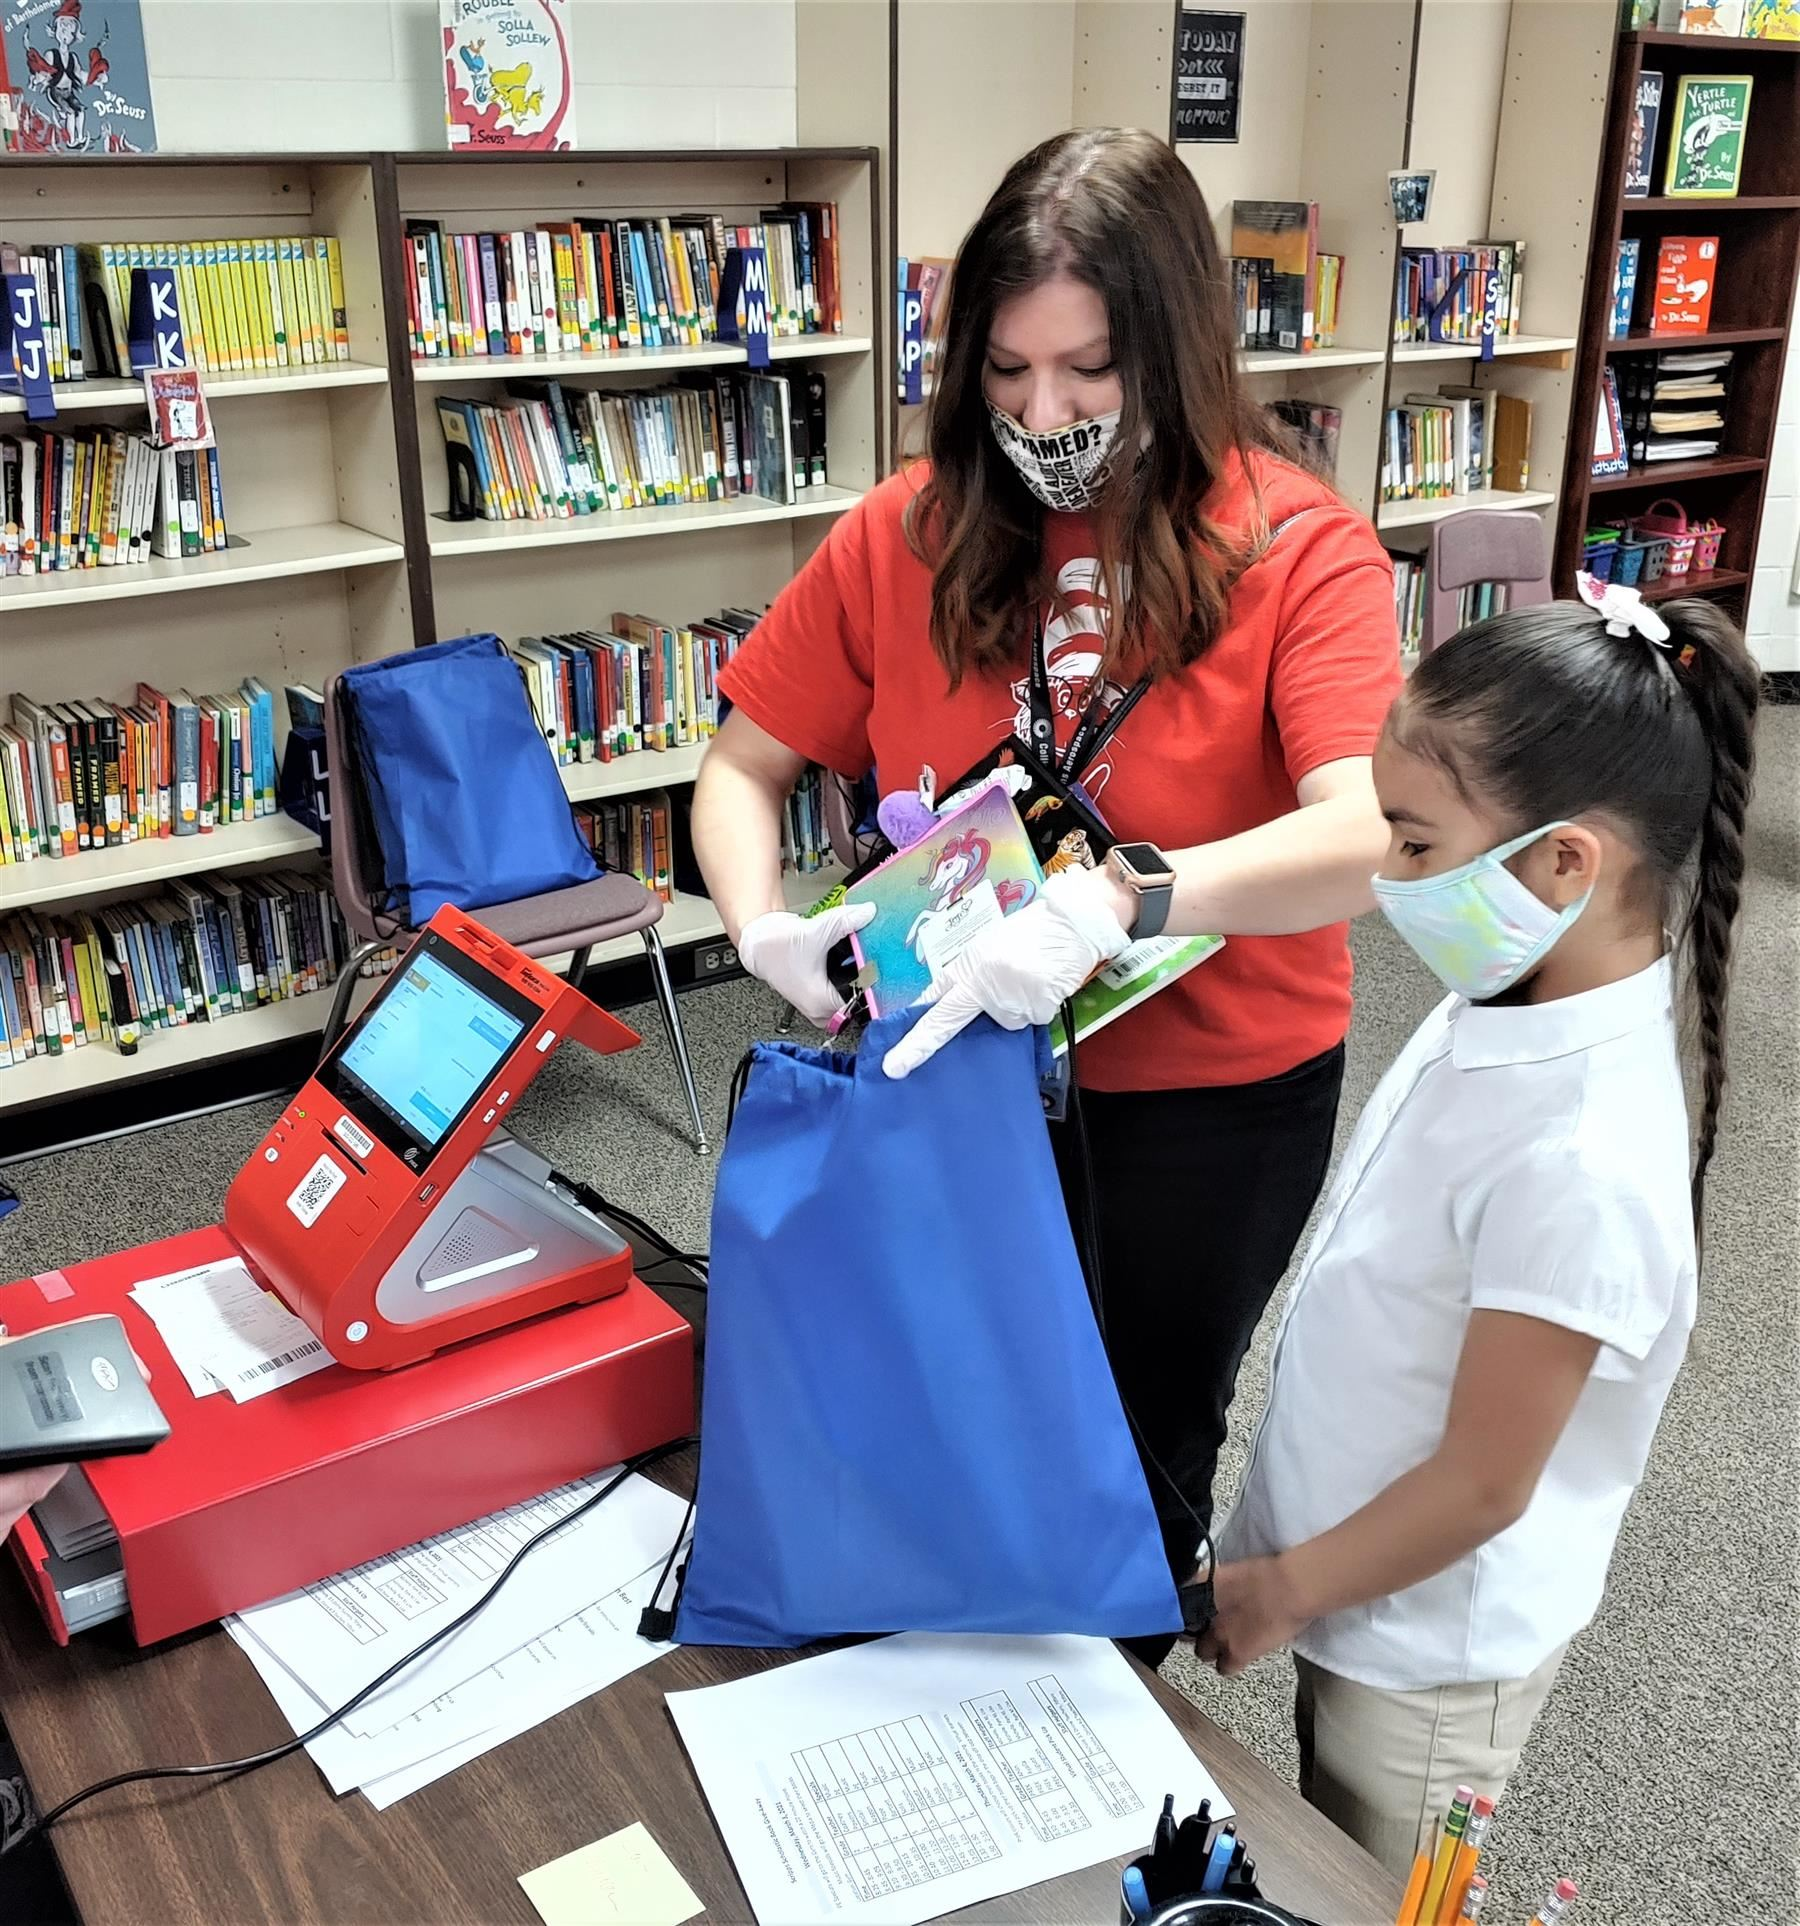 Michelle Padilla helps load a students bag with new books from the book fair